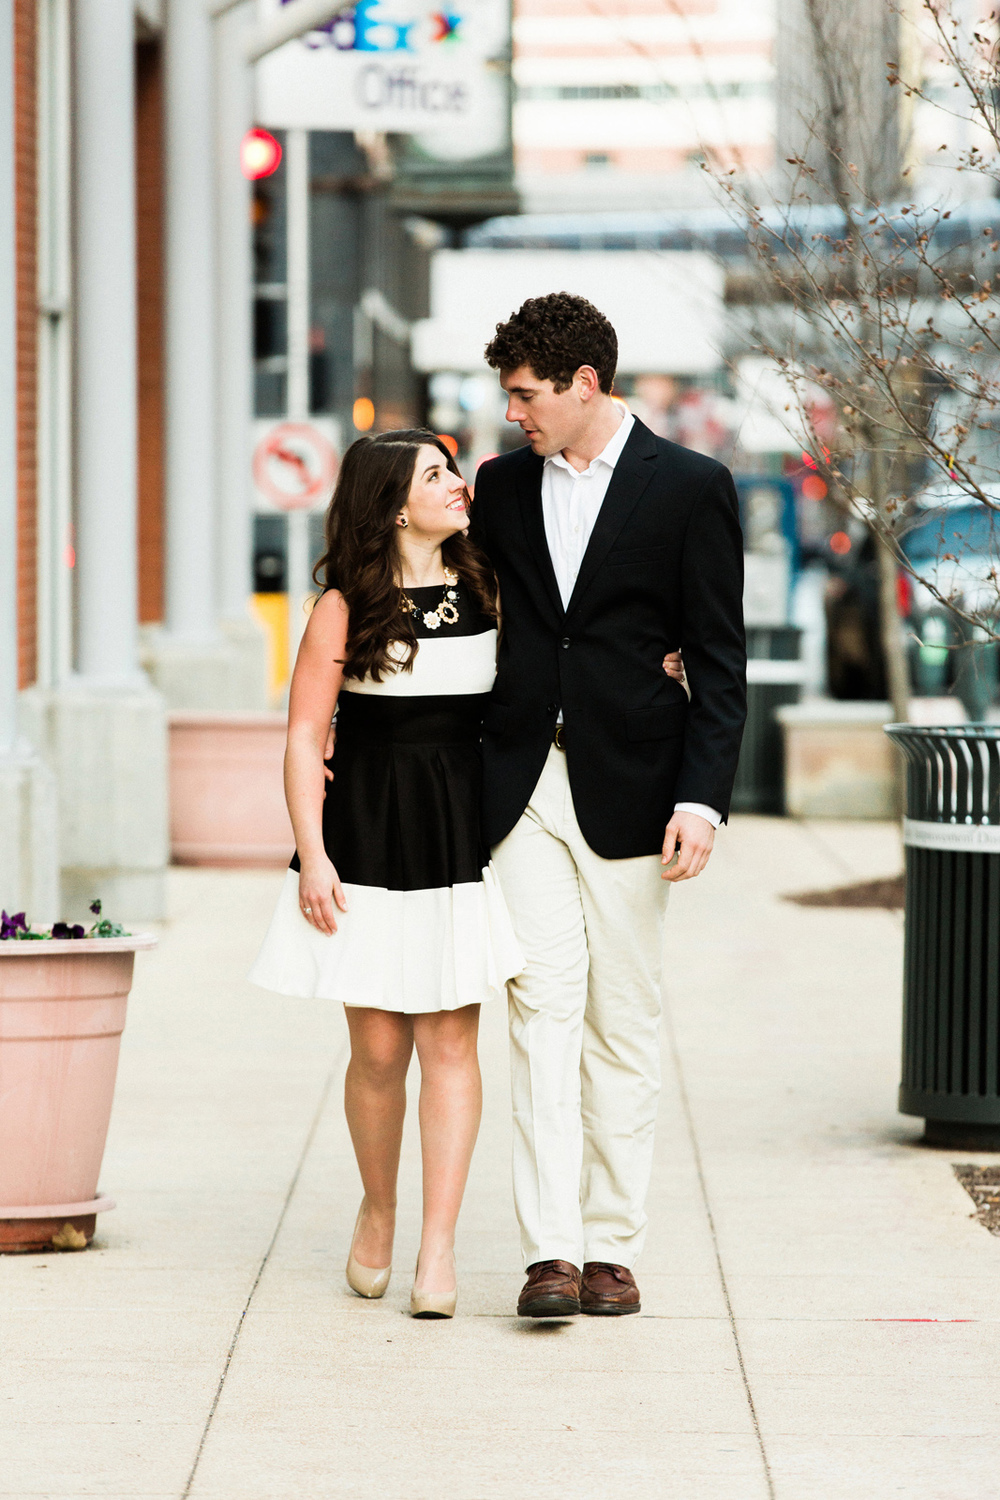 Oldani-Photography-St-Louis-Downtown-Engagement-Photos_20141226_165725.jpg